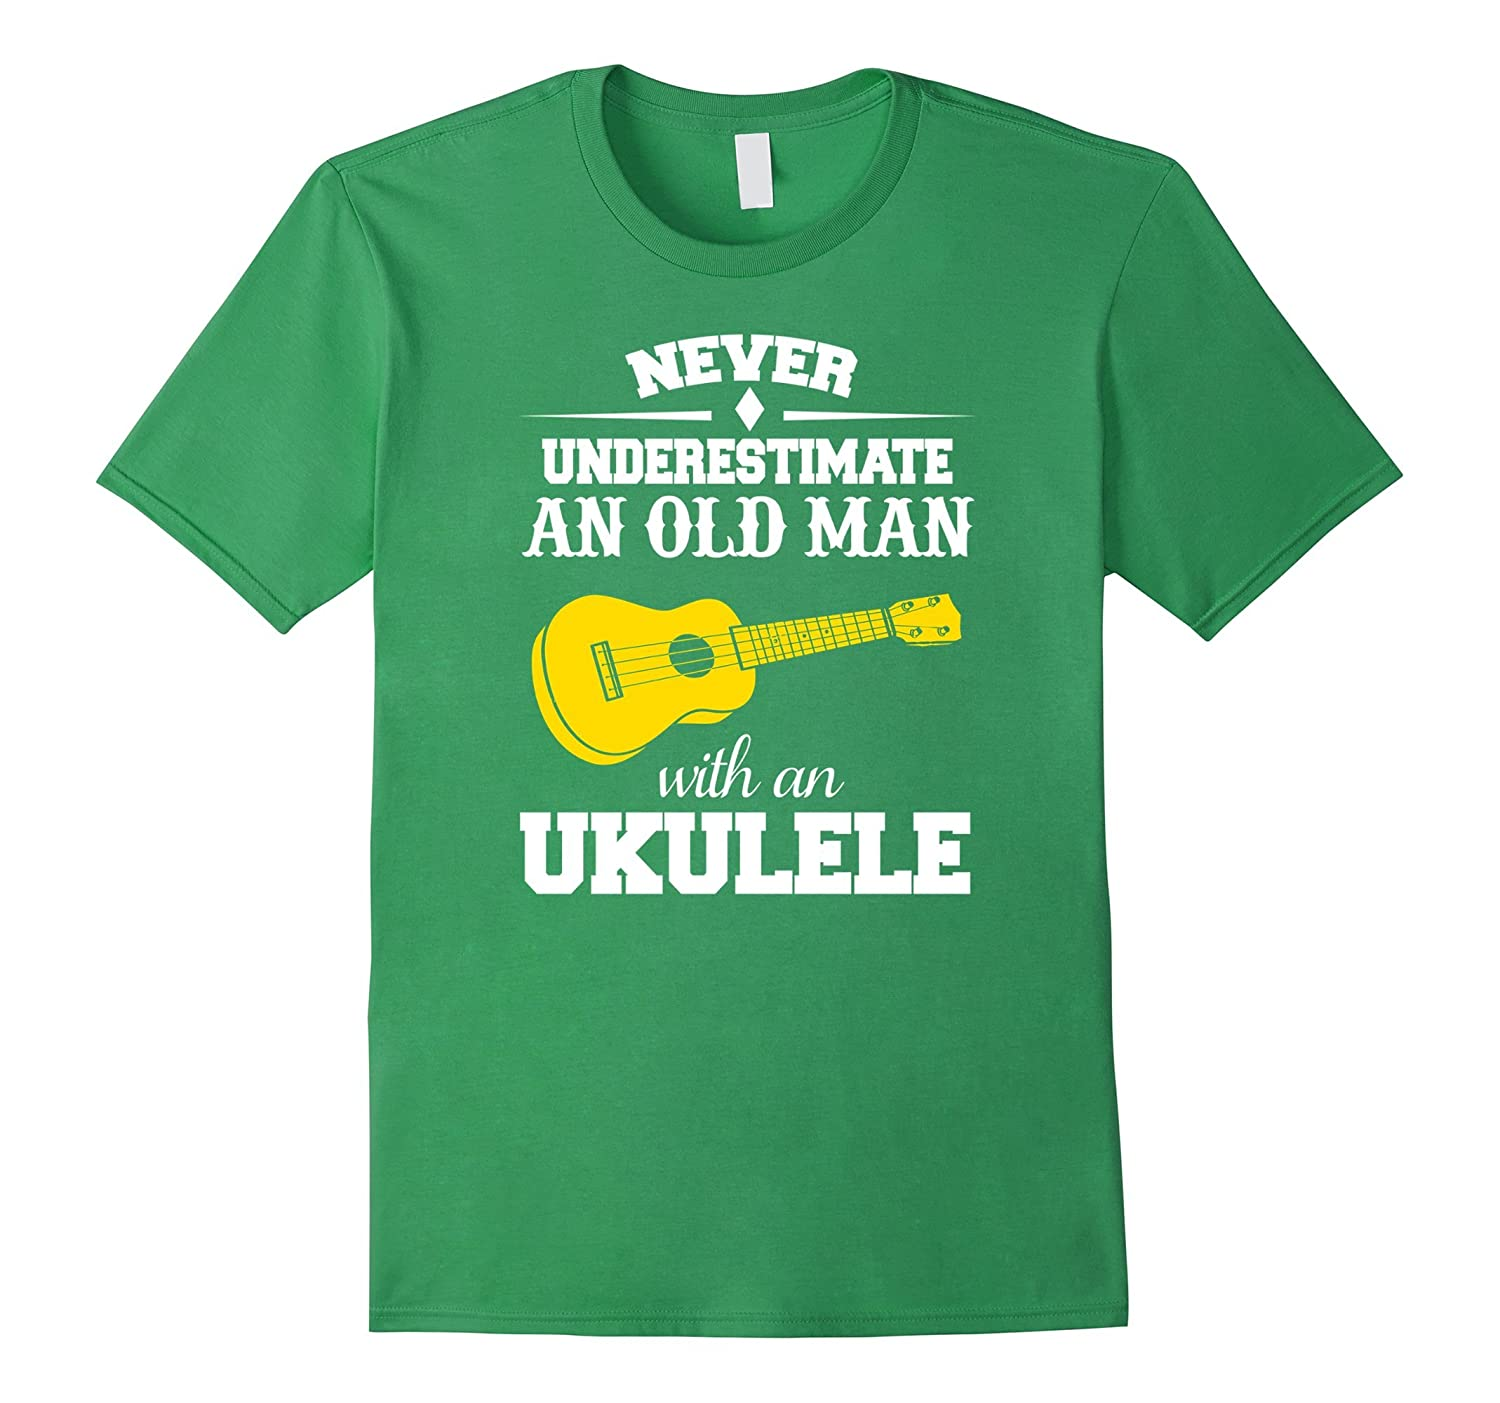 Funny Never Underestimate Old Man With A Ukulele T-shirt